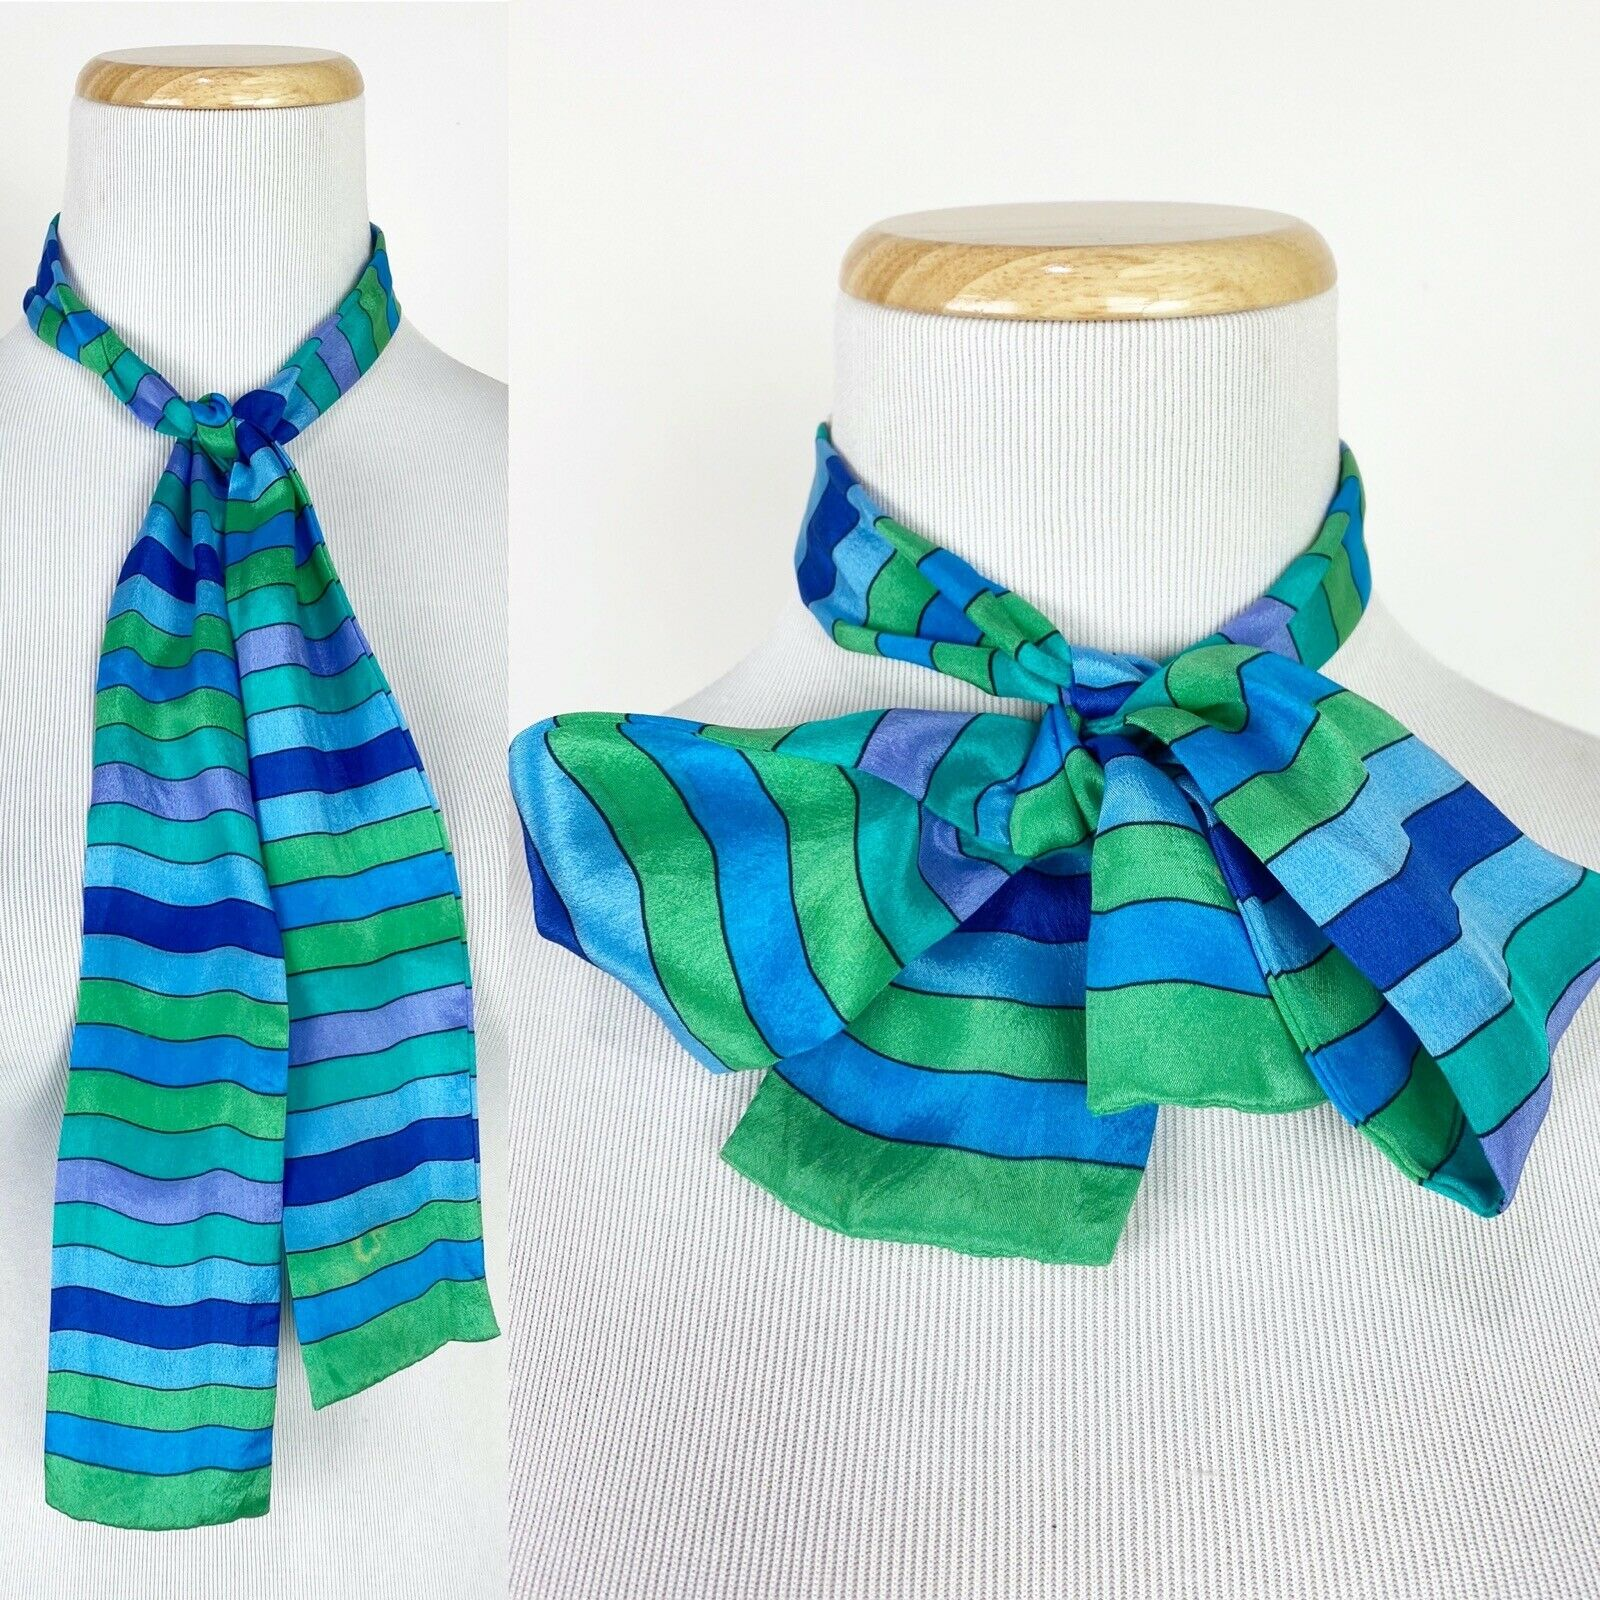 *FLAWS* VTG 80s 90s Jewel Tone Striped Silk Neck Tie Teal Blue Green Colorblock